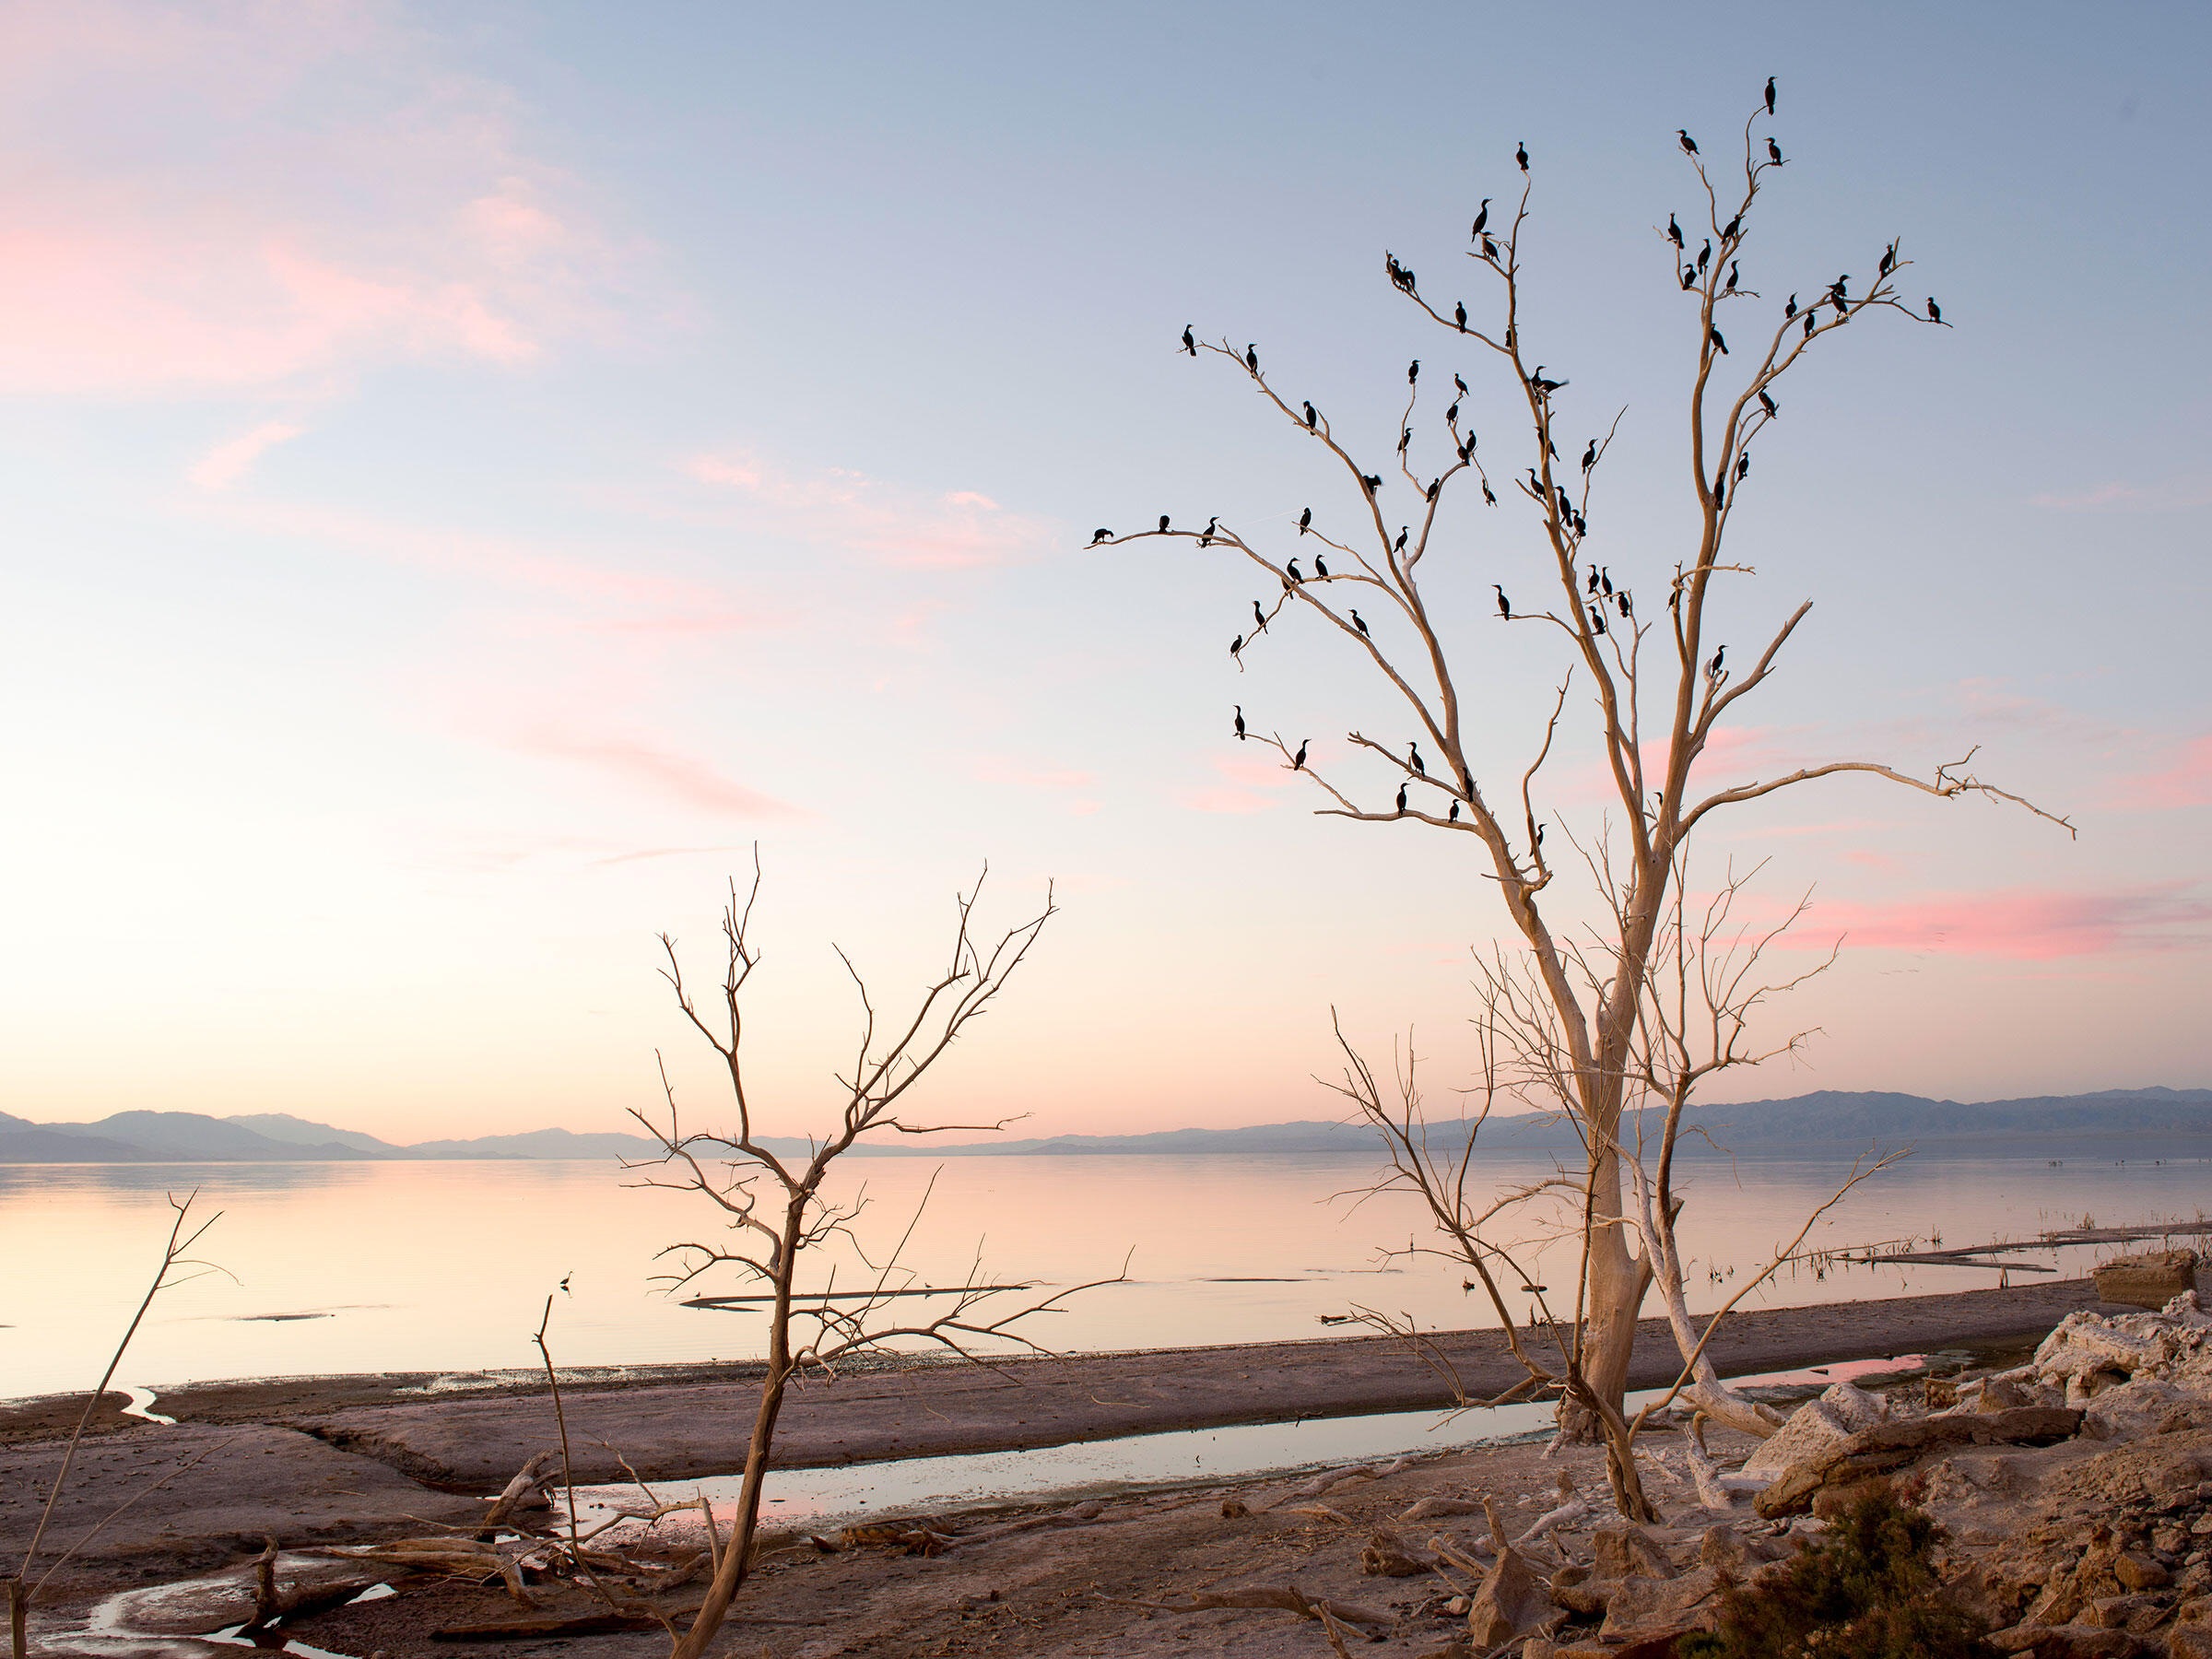 Double-crested Cormorants in a dead tree on the south end of the Salton Sea. Peter Bohler/Redux